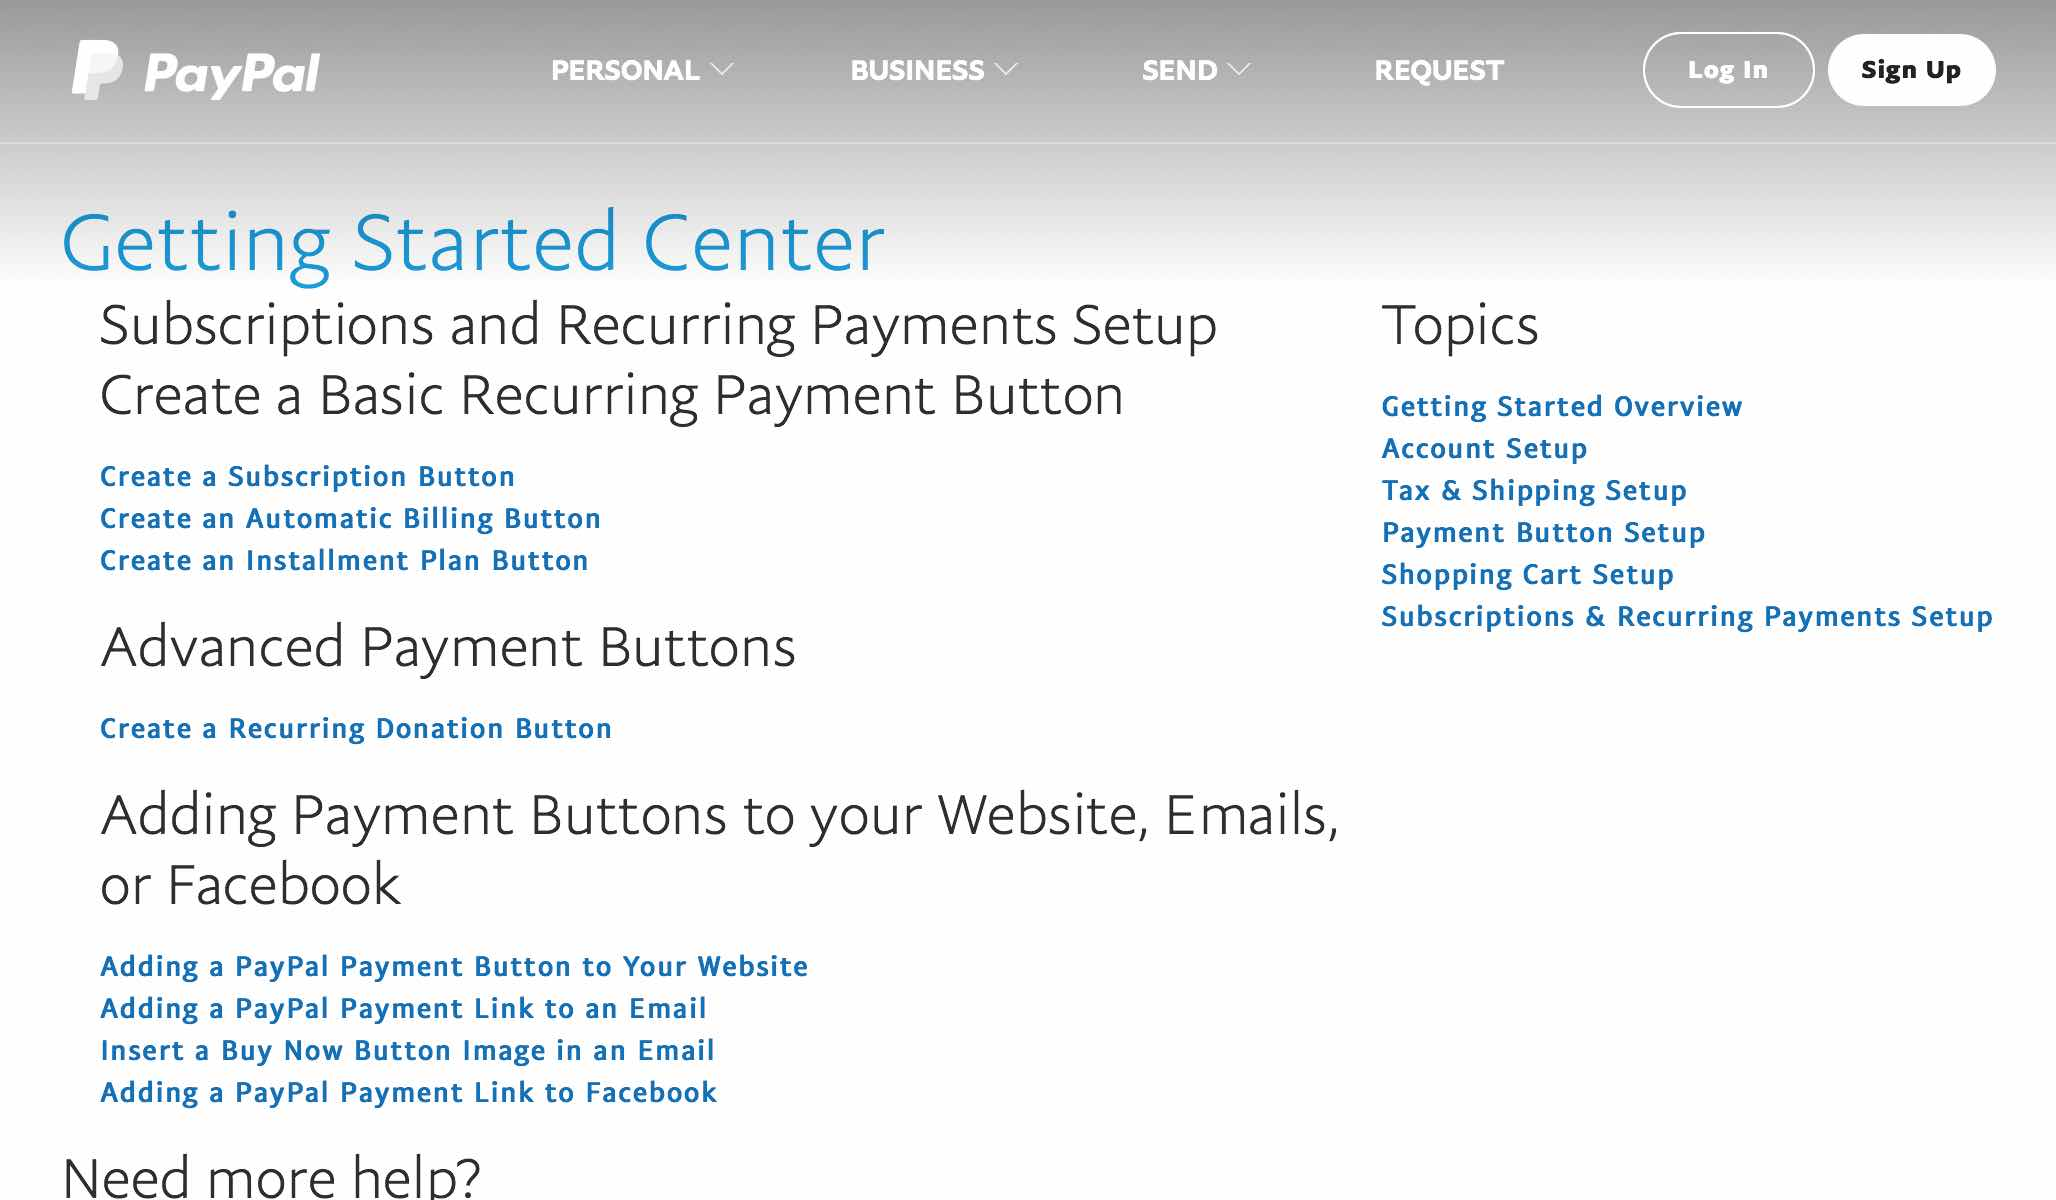 Set Up Subscription and Recurring Payment Buttons through PayPal